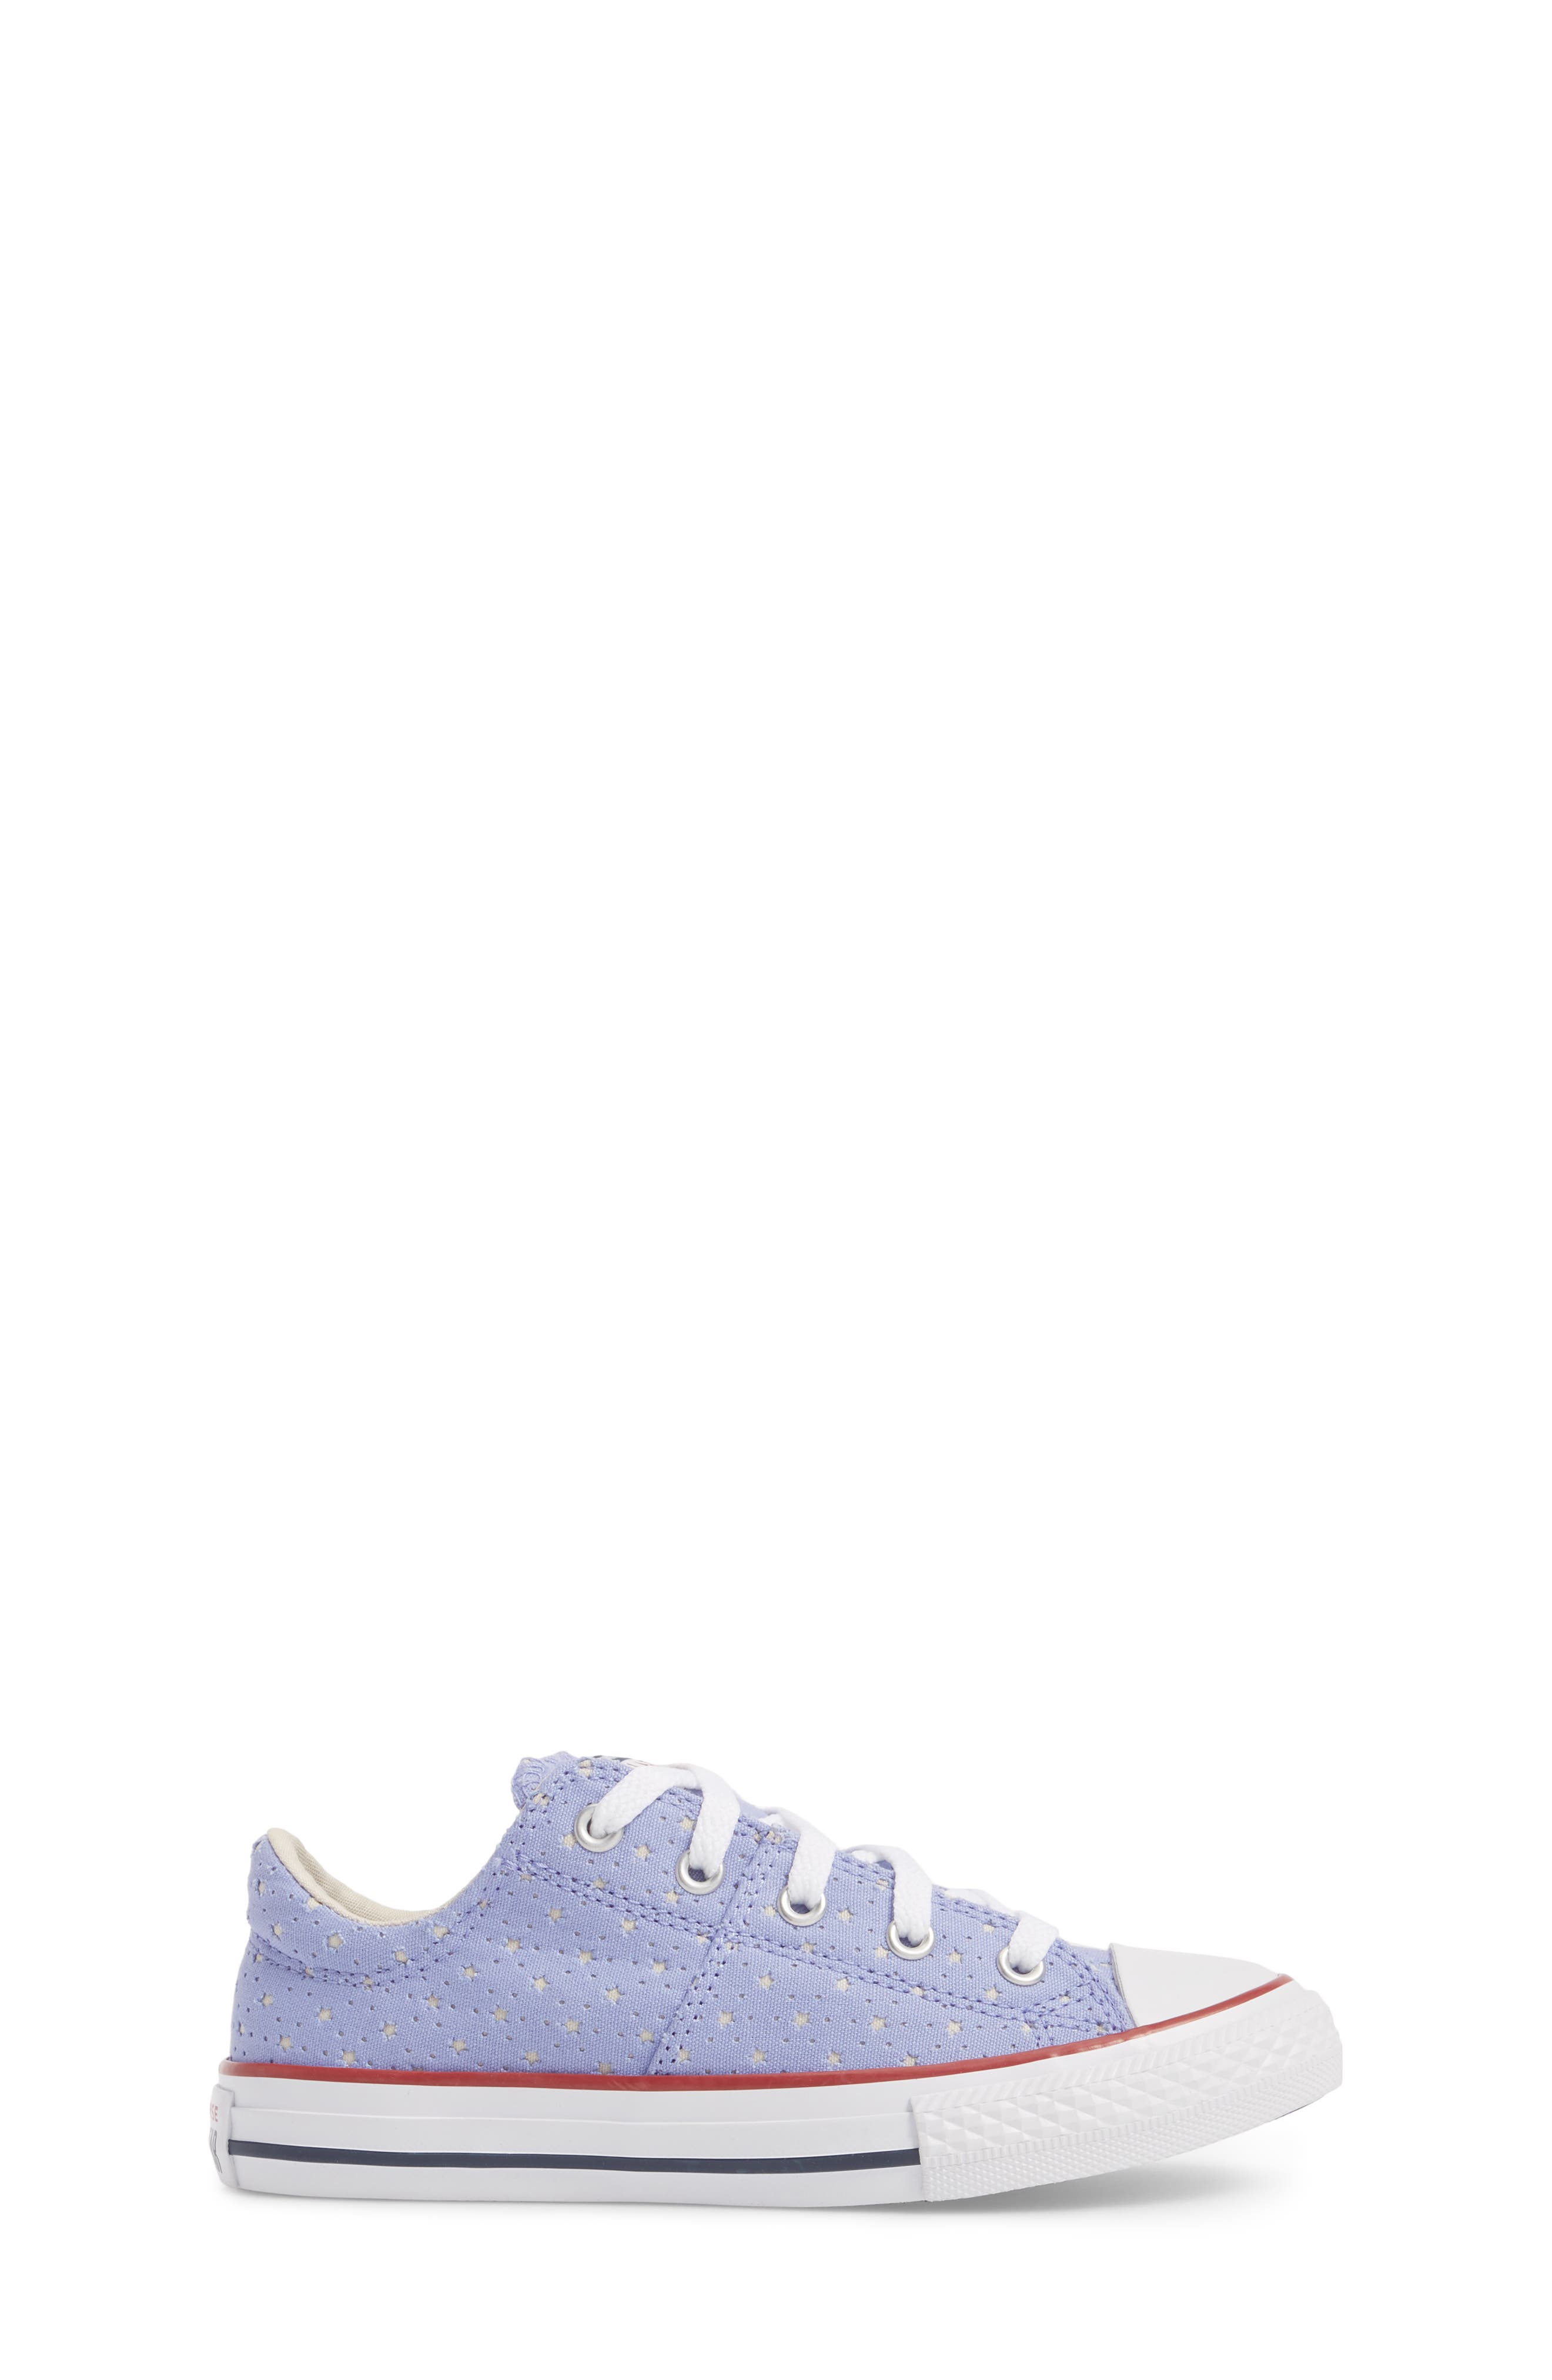 Chuck Taylor<sup>®</sup> All Star<sup>®</sup> Madison Sneaker,                             Alternate thumbnail 3, color,                             531